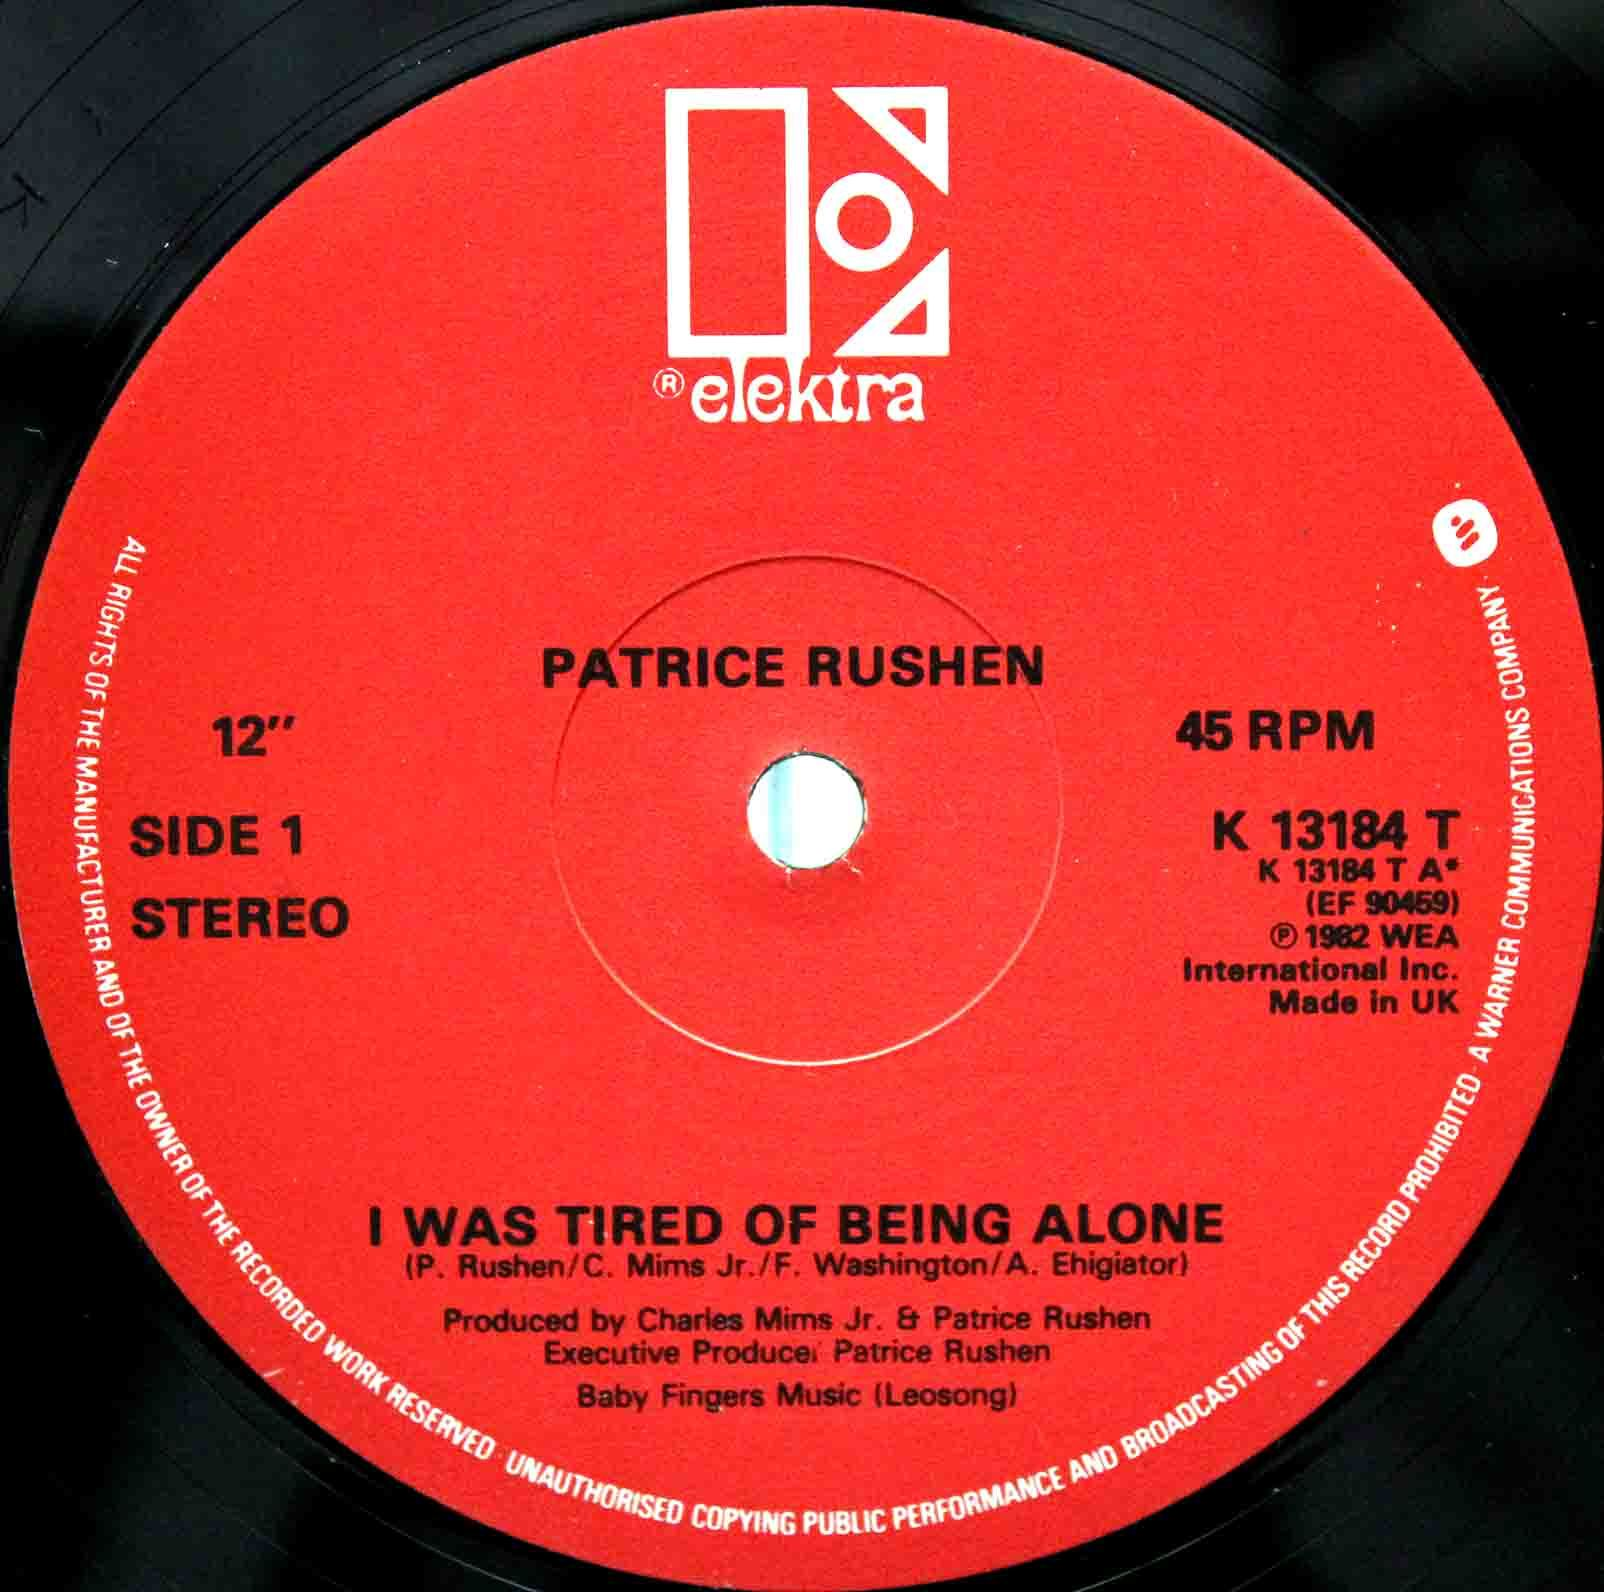 Patrice Rushen – I Was Tired Of Being Alone 03